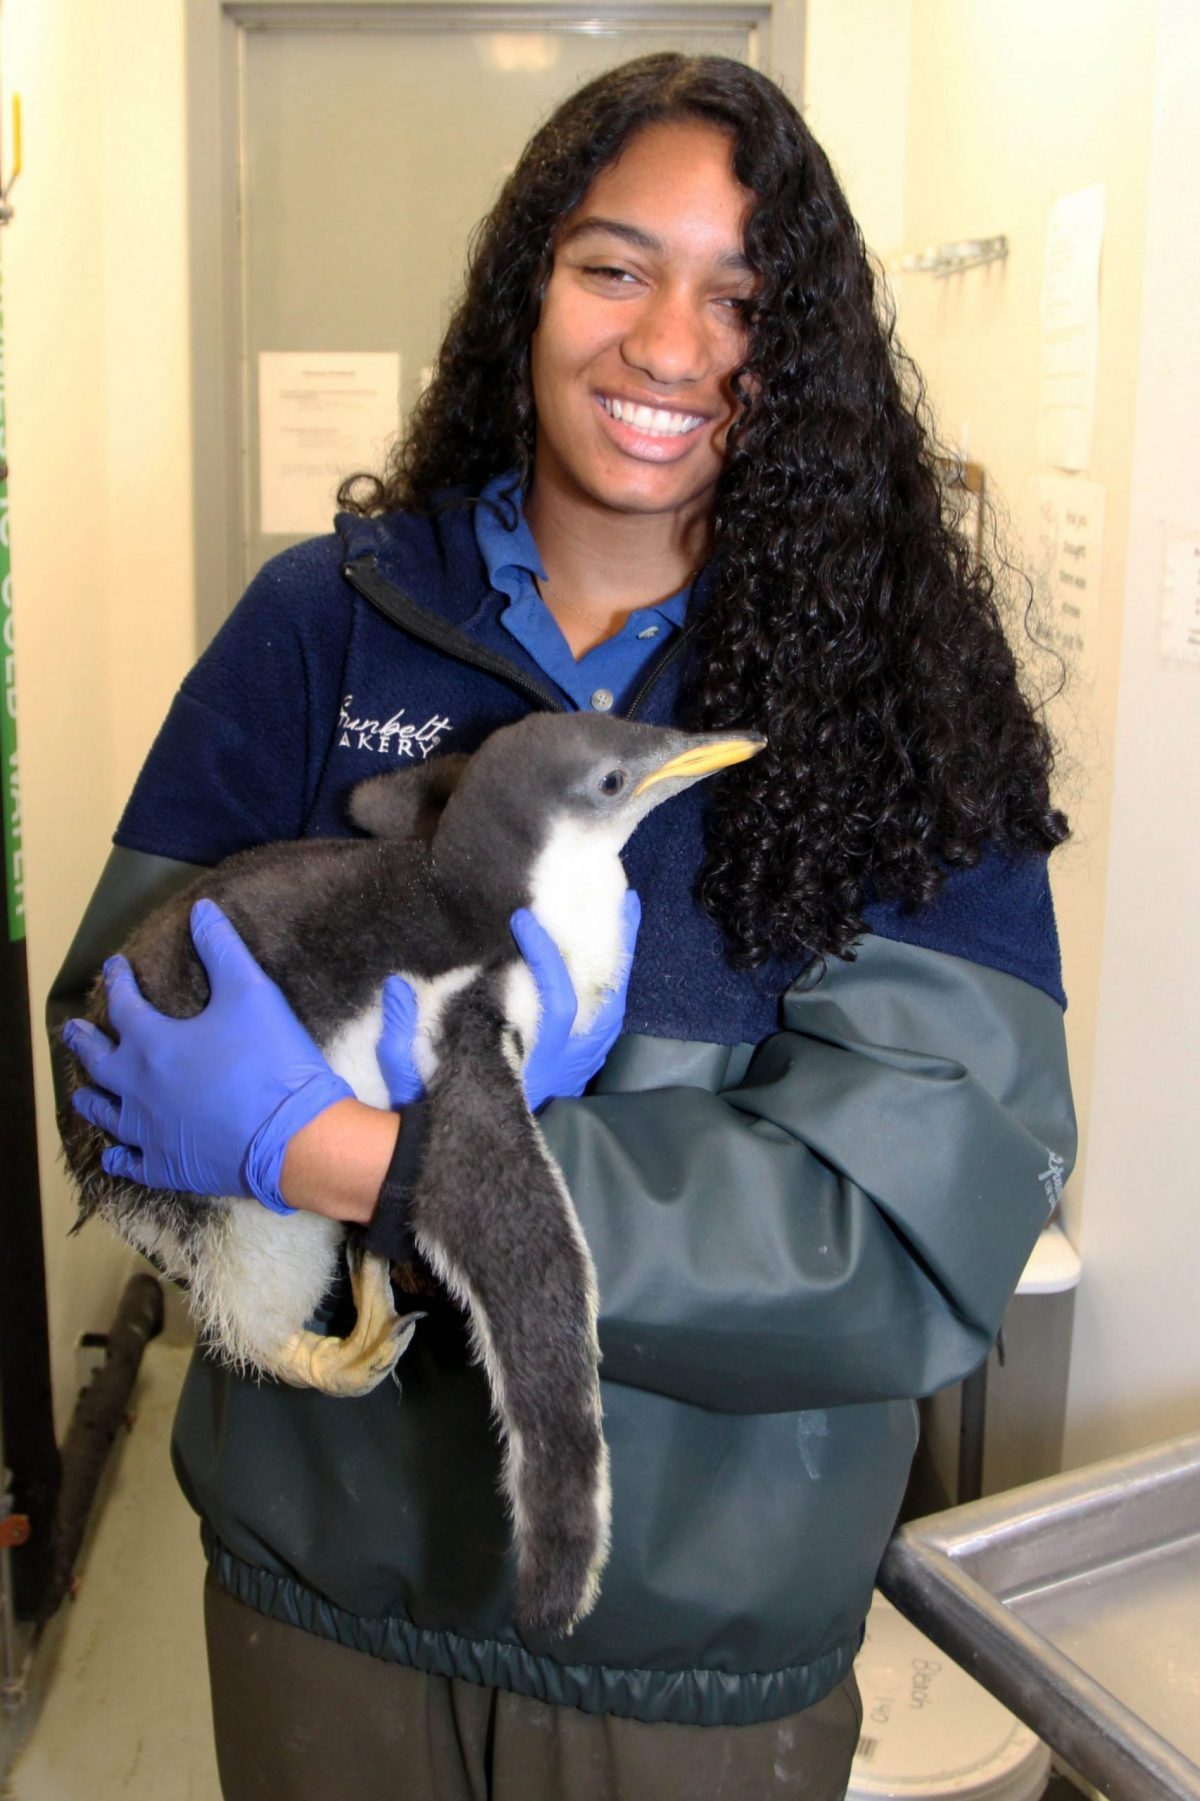 Amber Lowery holding baby penguin